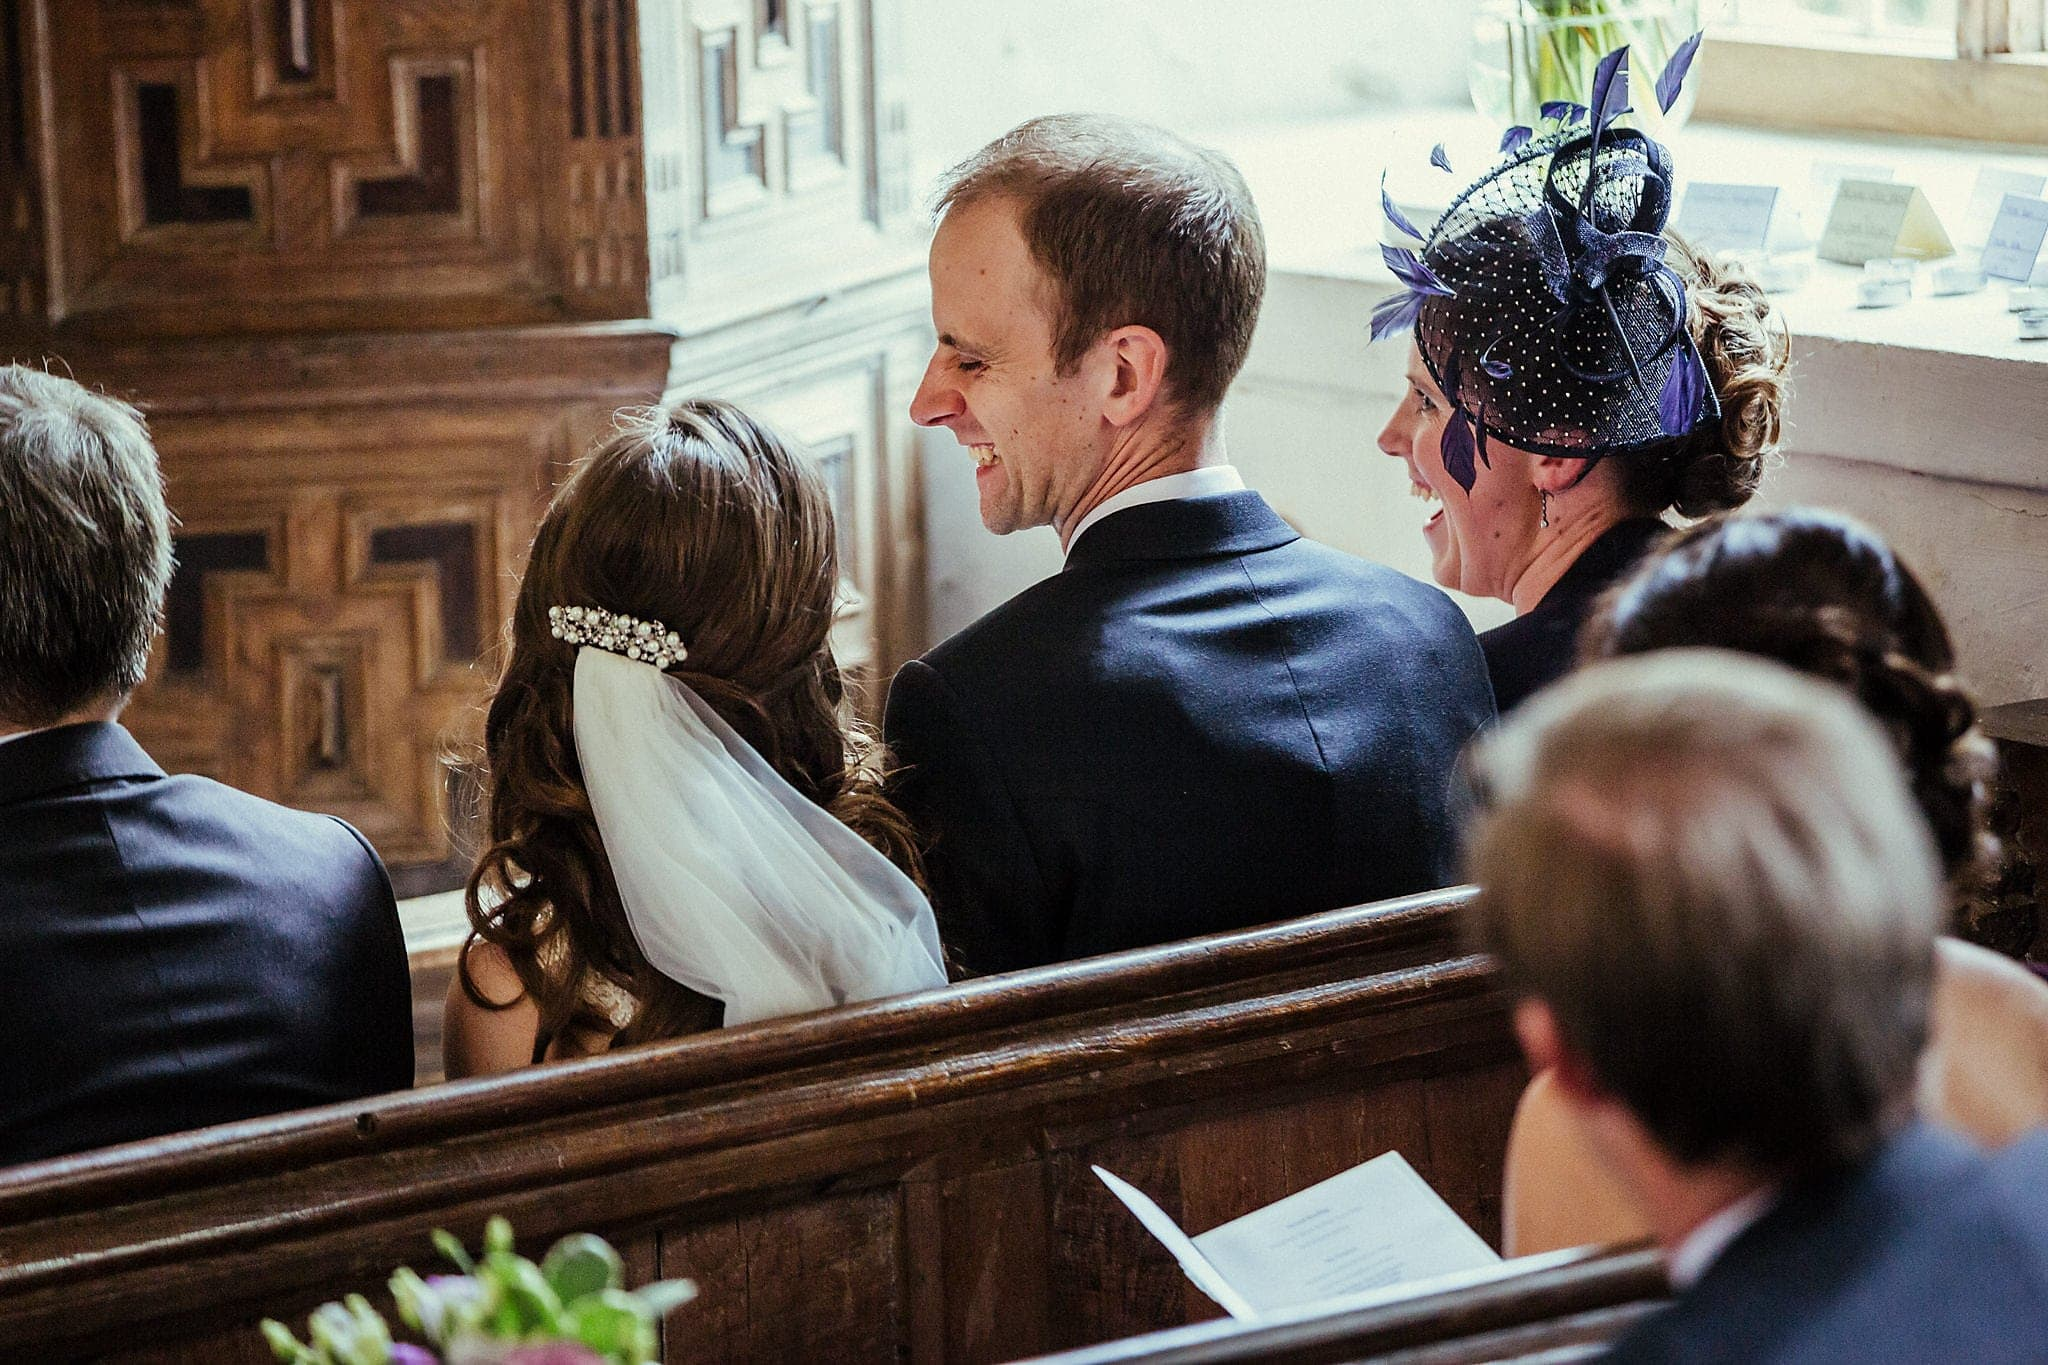 Bride and groom laughing in a pew in church during ceremony